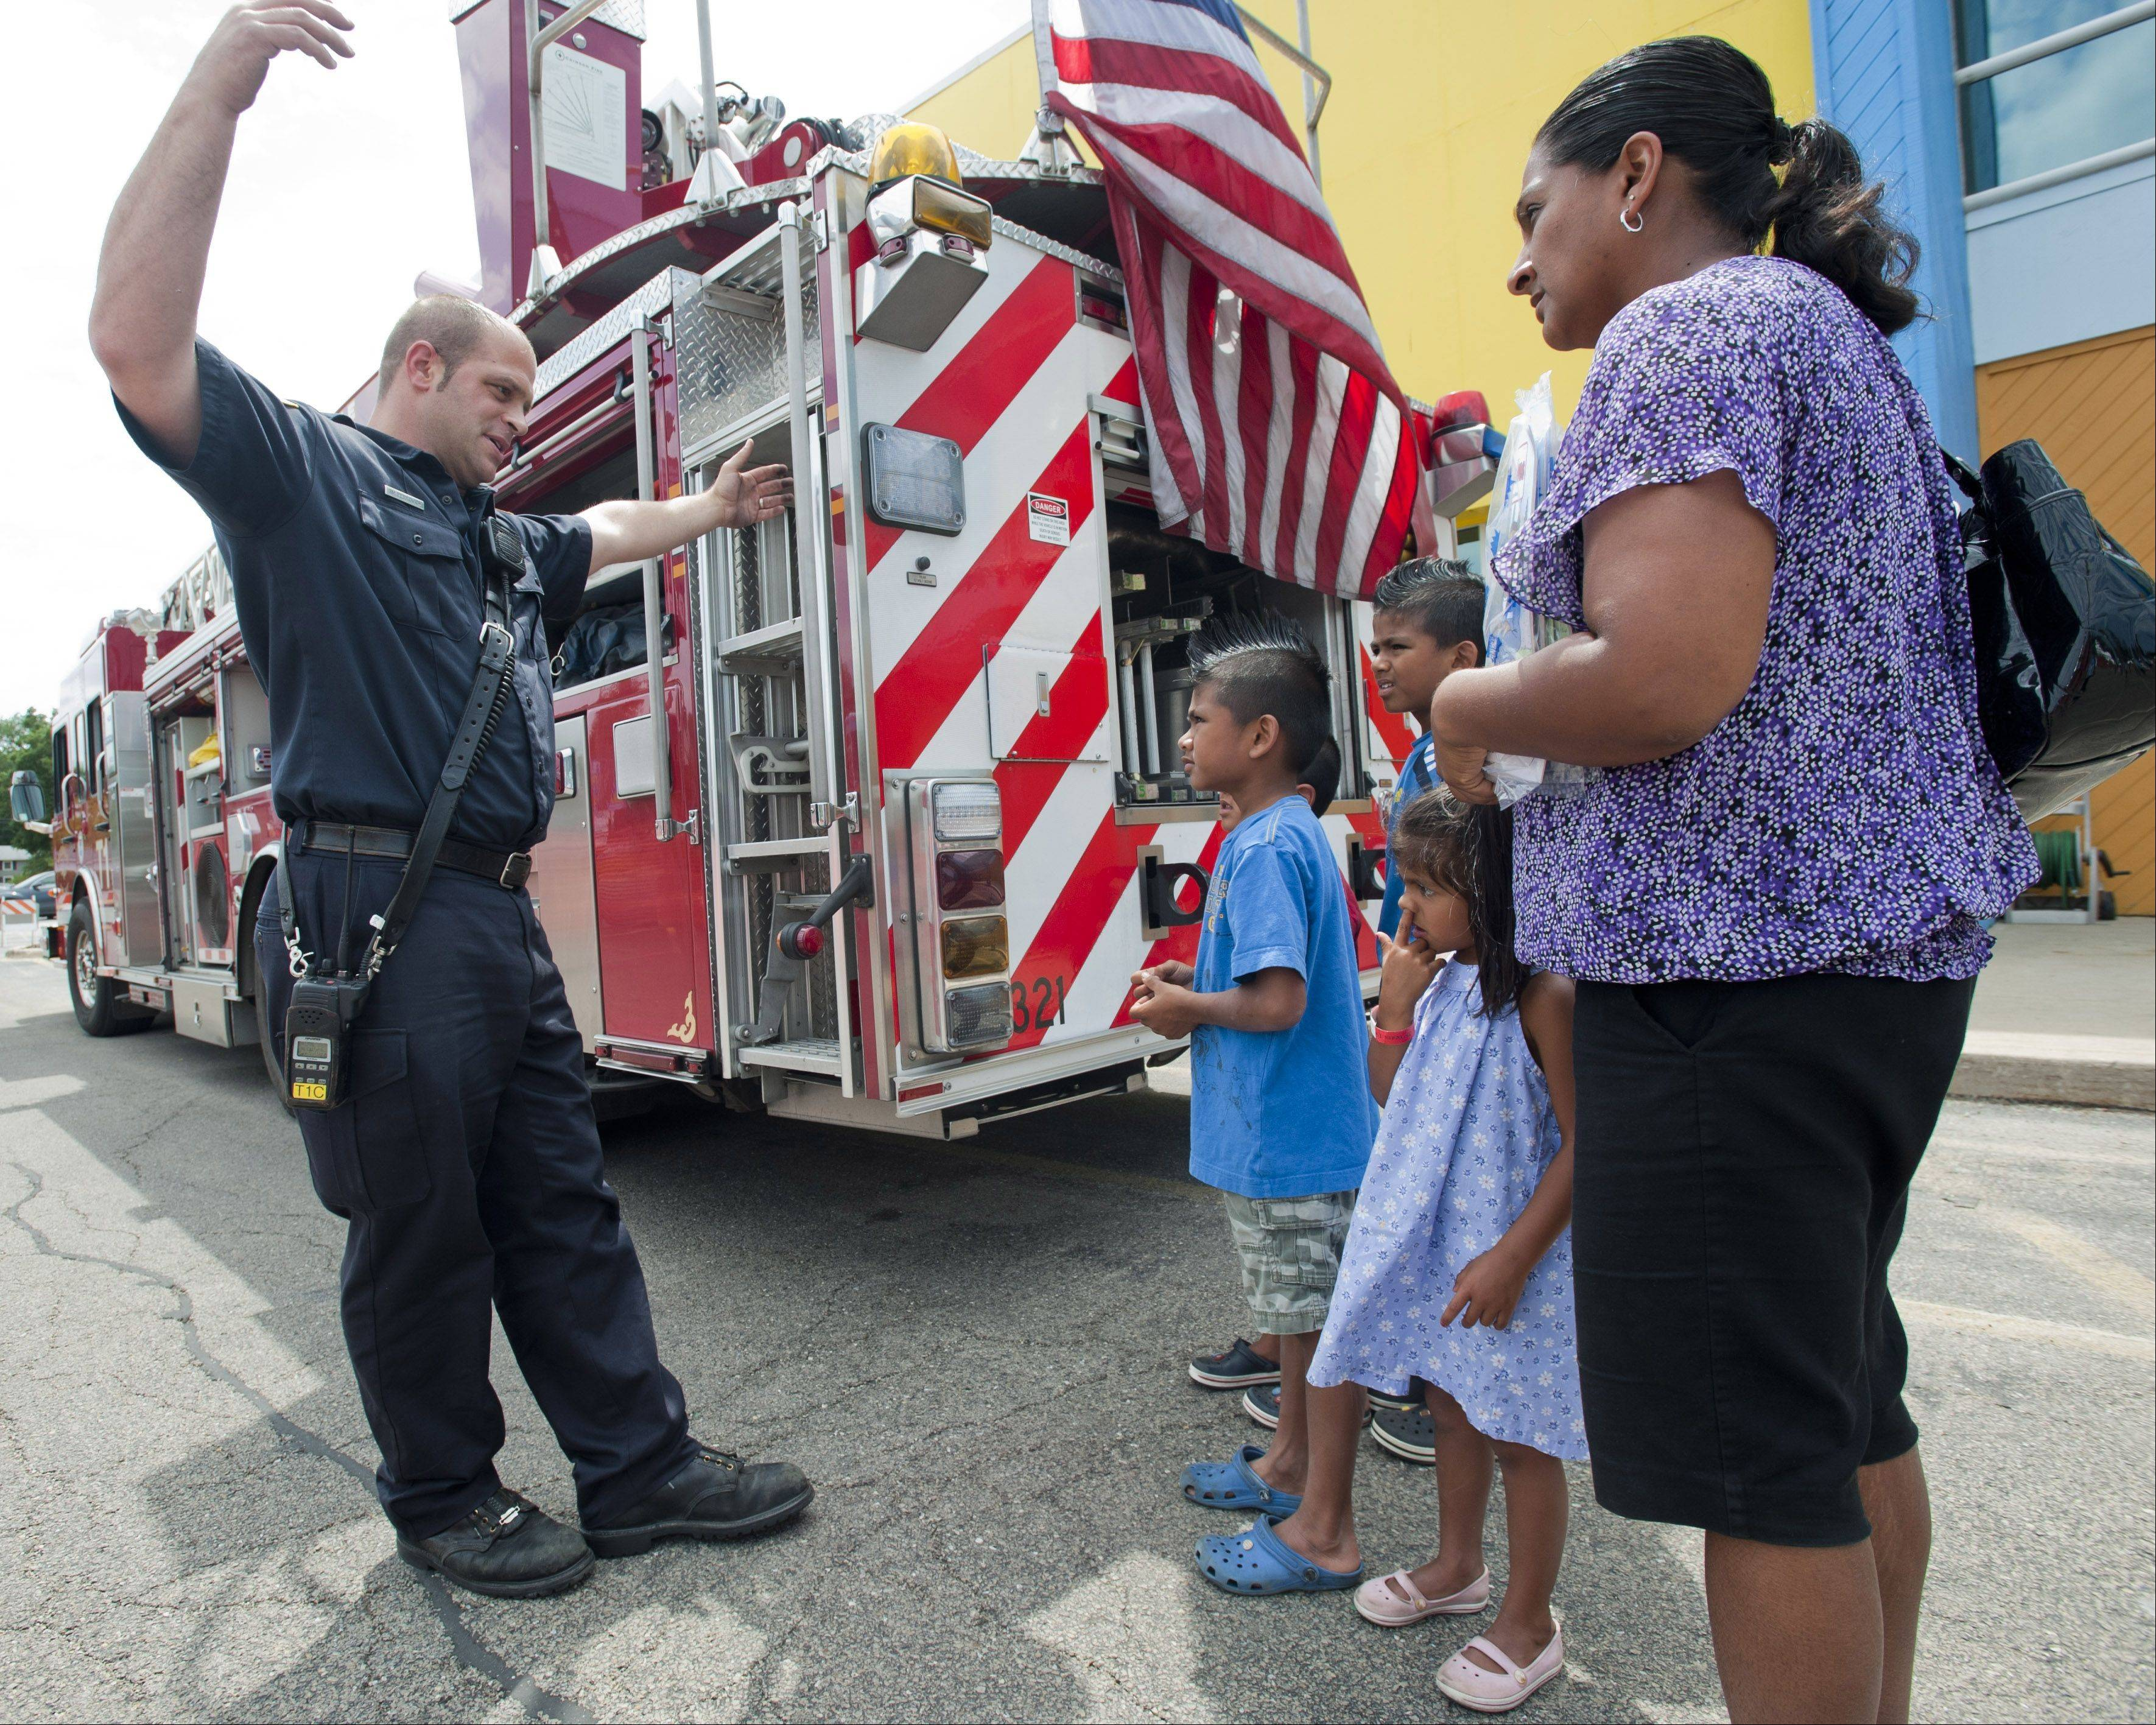 Firefighter Jim Perkovich explains fire truck instruments to visitors of the DuPage Children's Museum's 25th anniversary celebration. Those who attended enjoyed train rides, art activities, music and the ever popular Touch-a-Truck outside the museum.